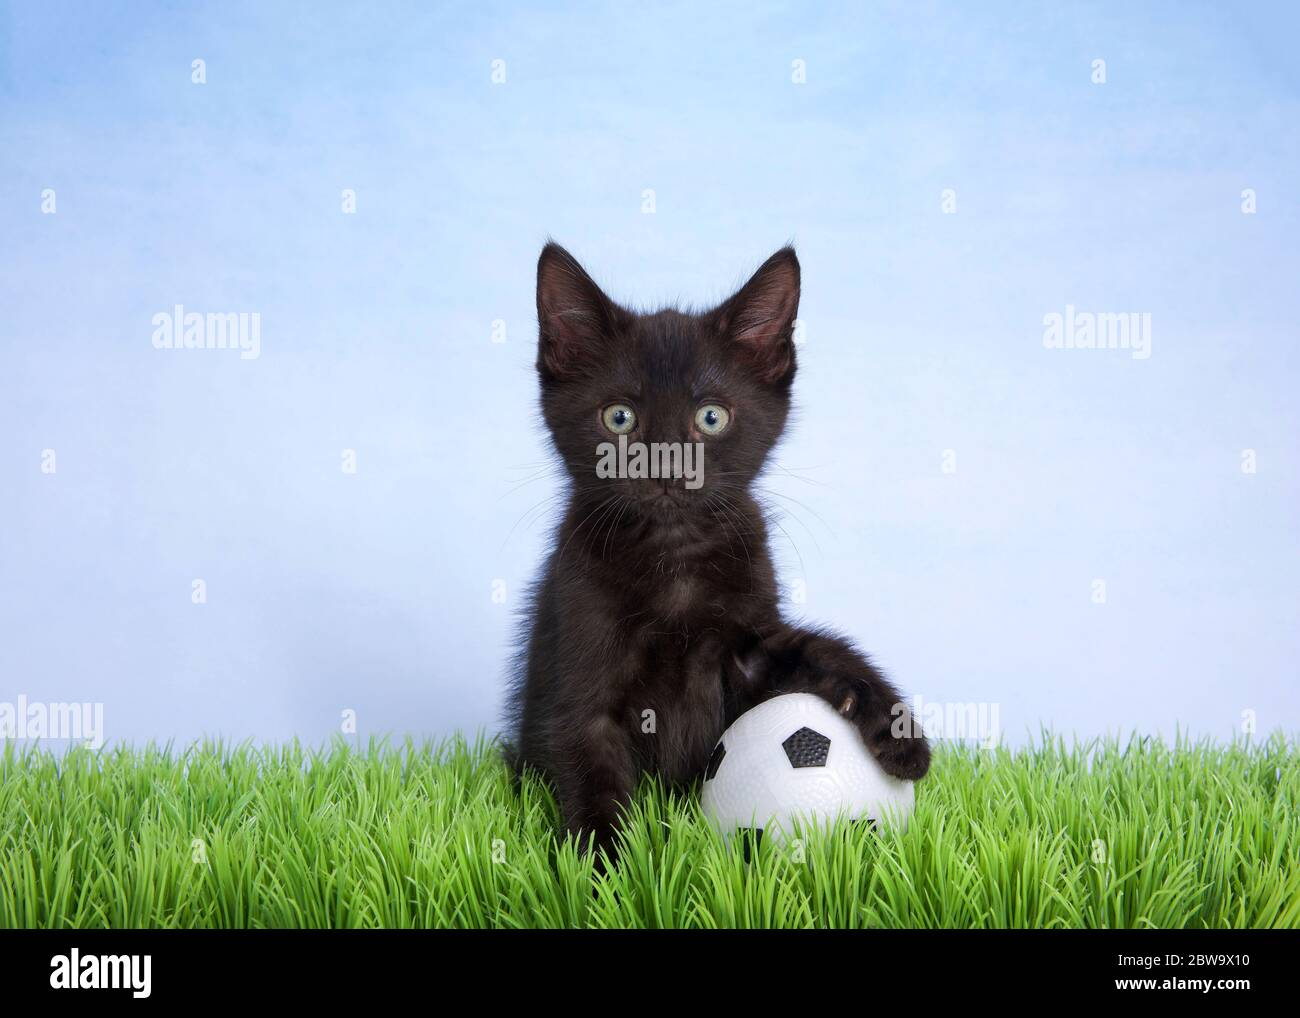 Adorable black kitten sitting in green grass with paw on a soccer ball,  also known as a football. Fun animal sports theme Stock Photo - Alamy